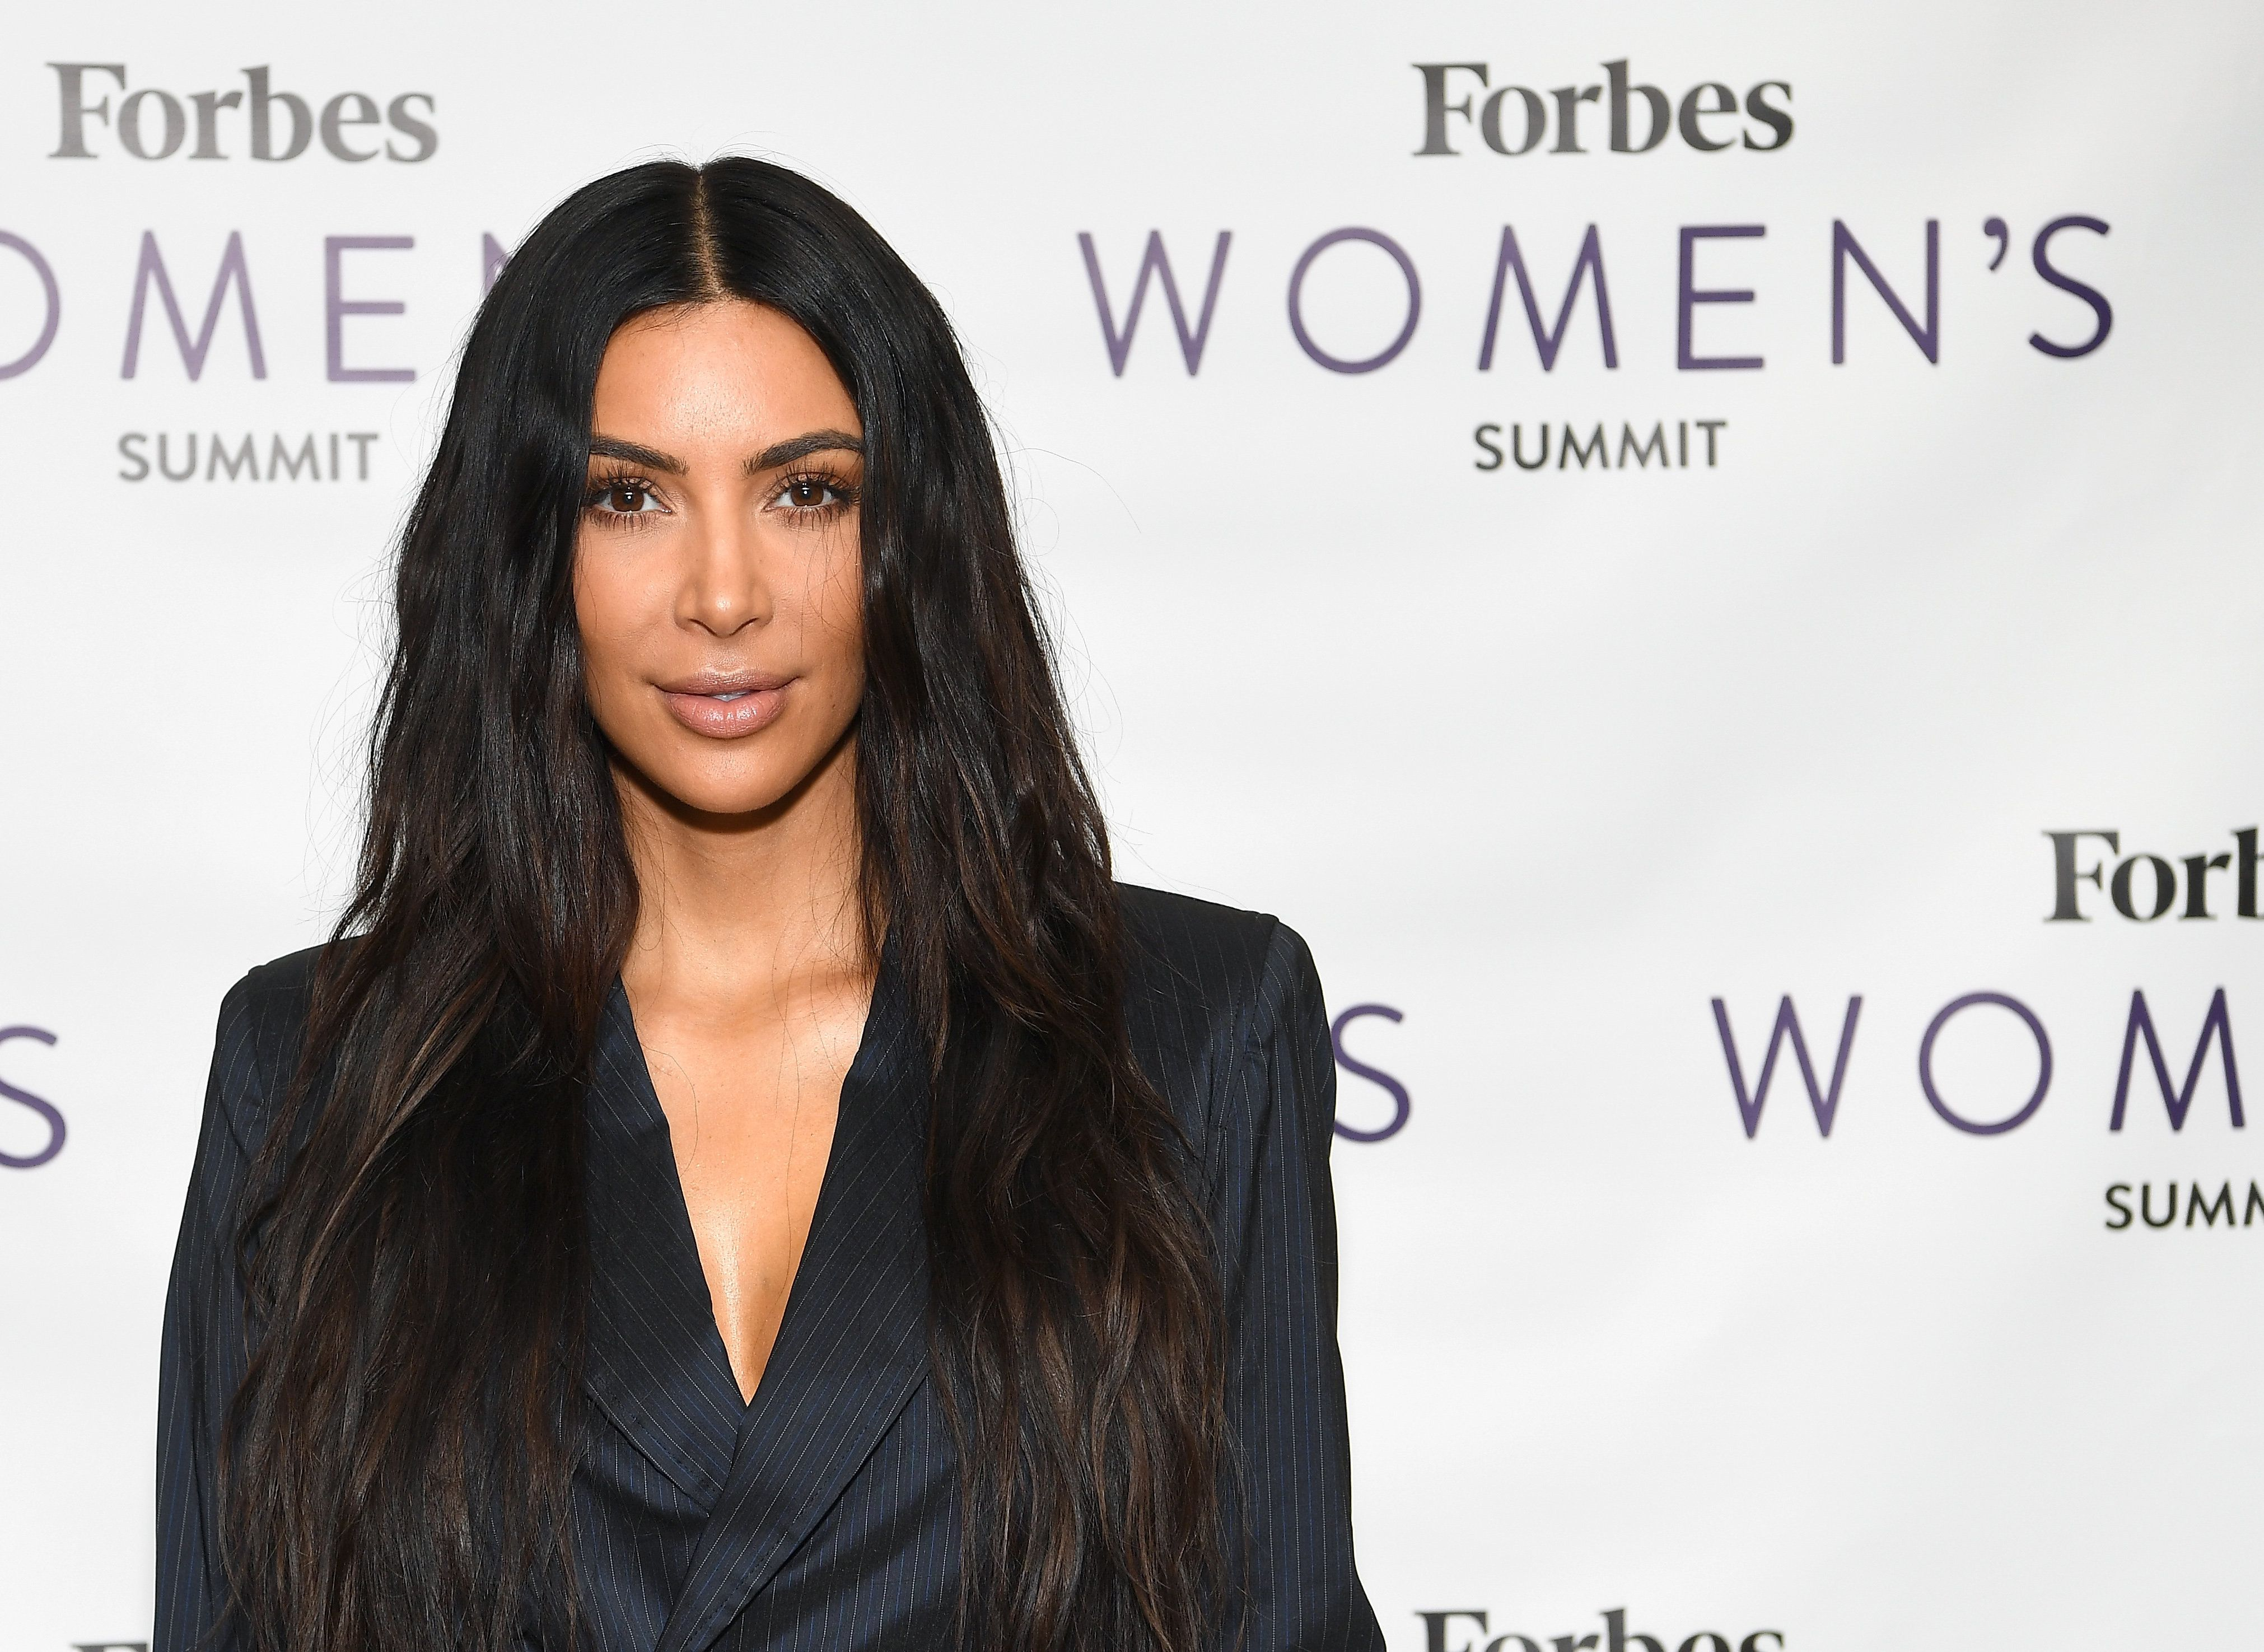 Kim Kardashian attends the 2017 Forbes Women's Summit at Spring Studios on June 13.